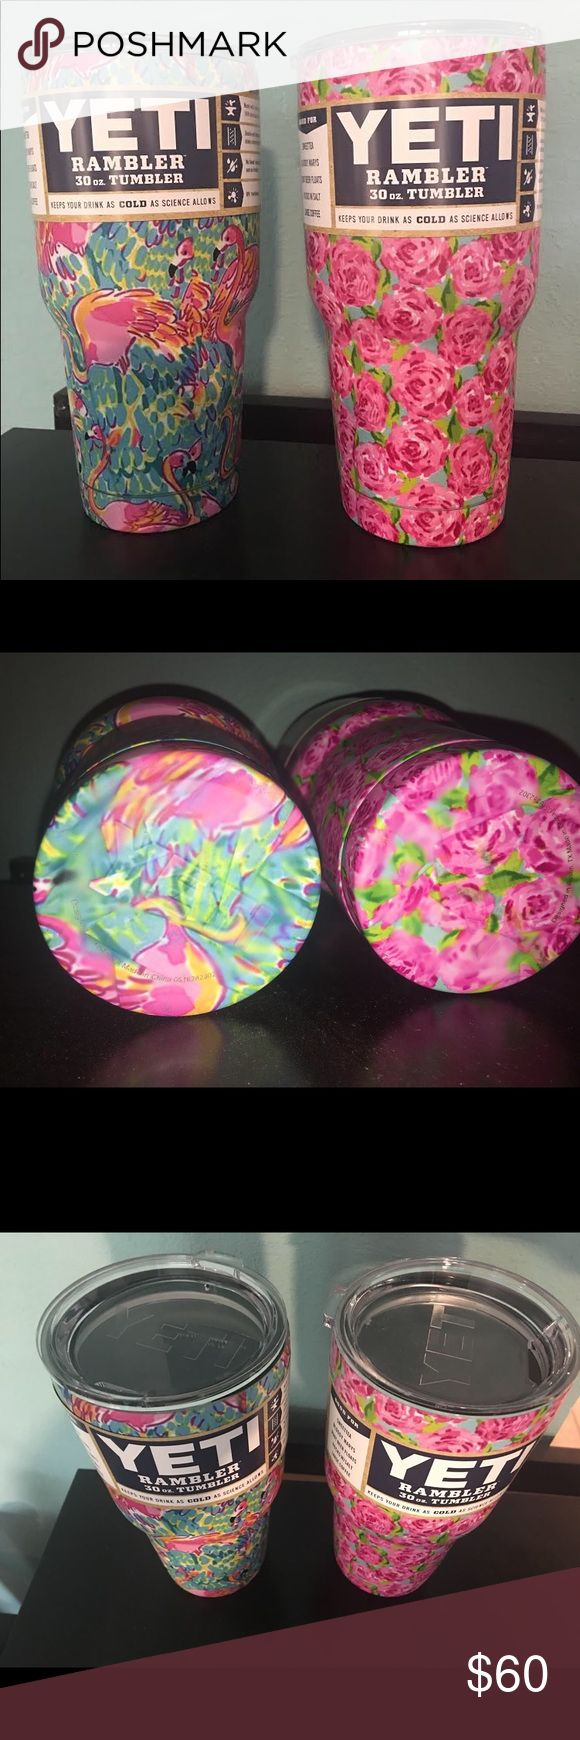 Flamingo Yeti Roses Yeti Combo Pack 30oz Rambler ❤️.You will receive both cups in this listing unless you specify that you were just making an offer on one!  Lilly Pulitzer look!  If you would like just one, comment that style and MAKE AN OFFER!  But why not get both and maybe even gift one to your BFF?  ❤️ Yeti Accessories